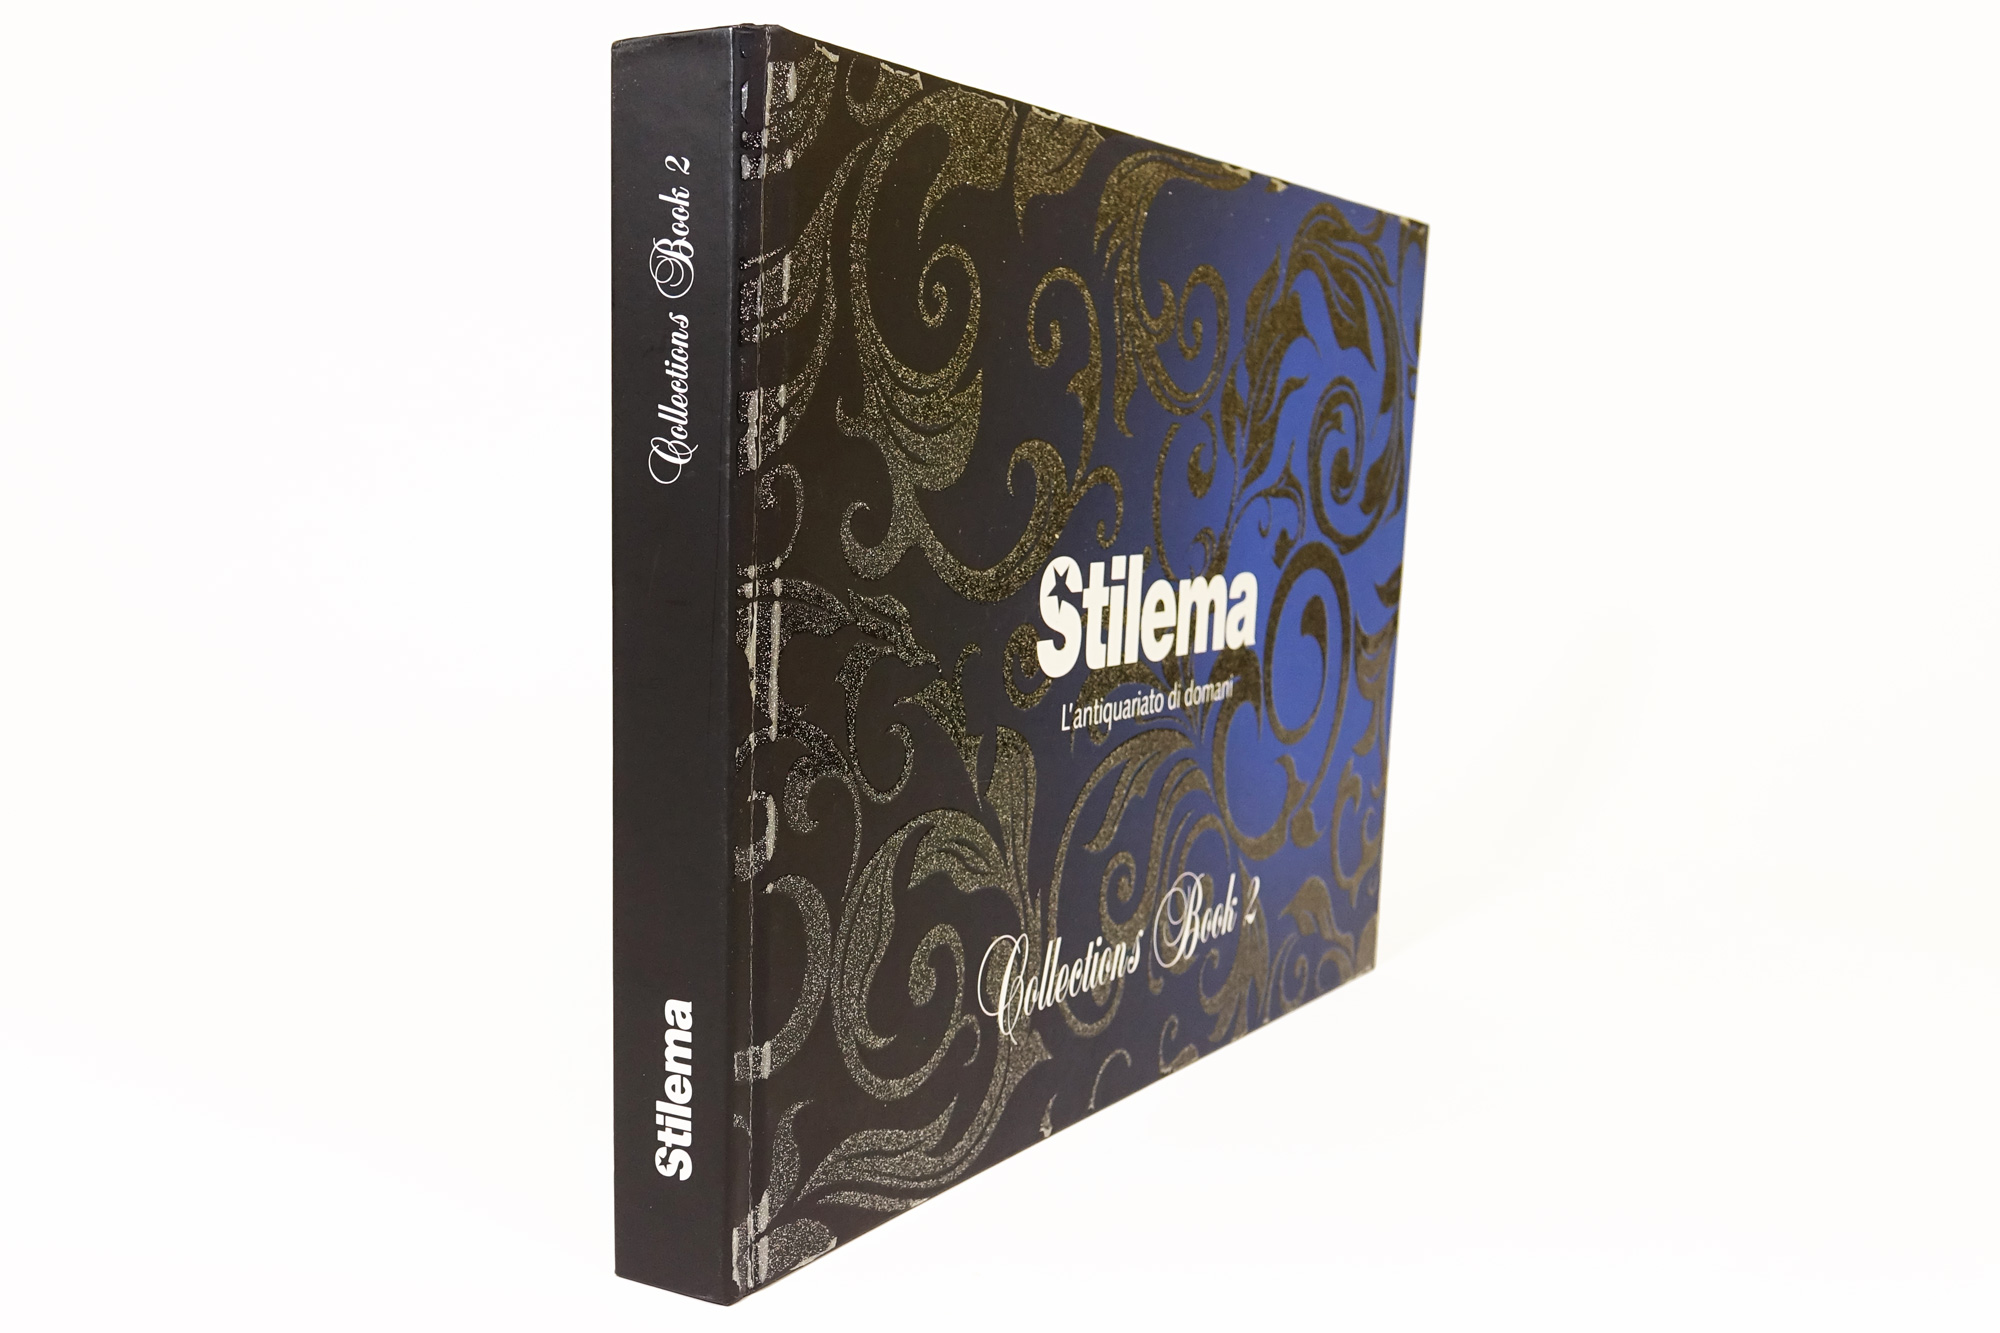 studio bartolini cataloghi grafici rendering 3D Stilema collection book Urbino Mobile classico 2